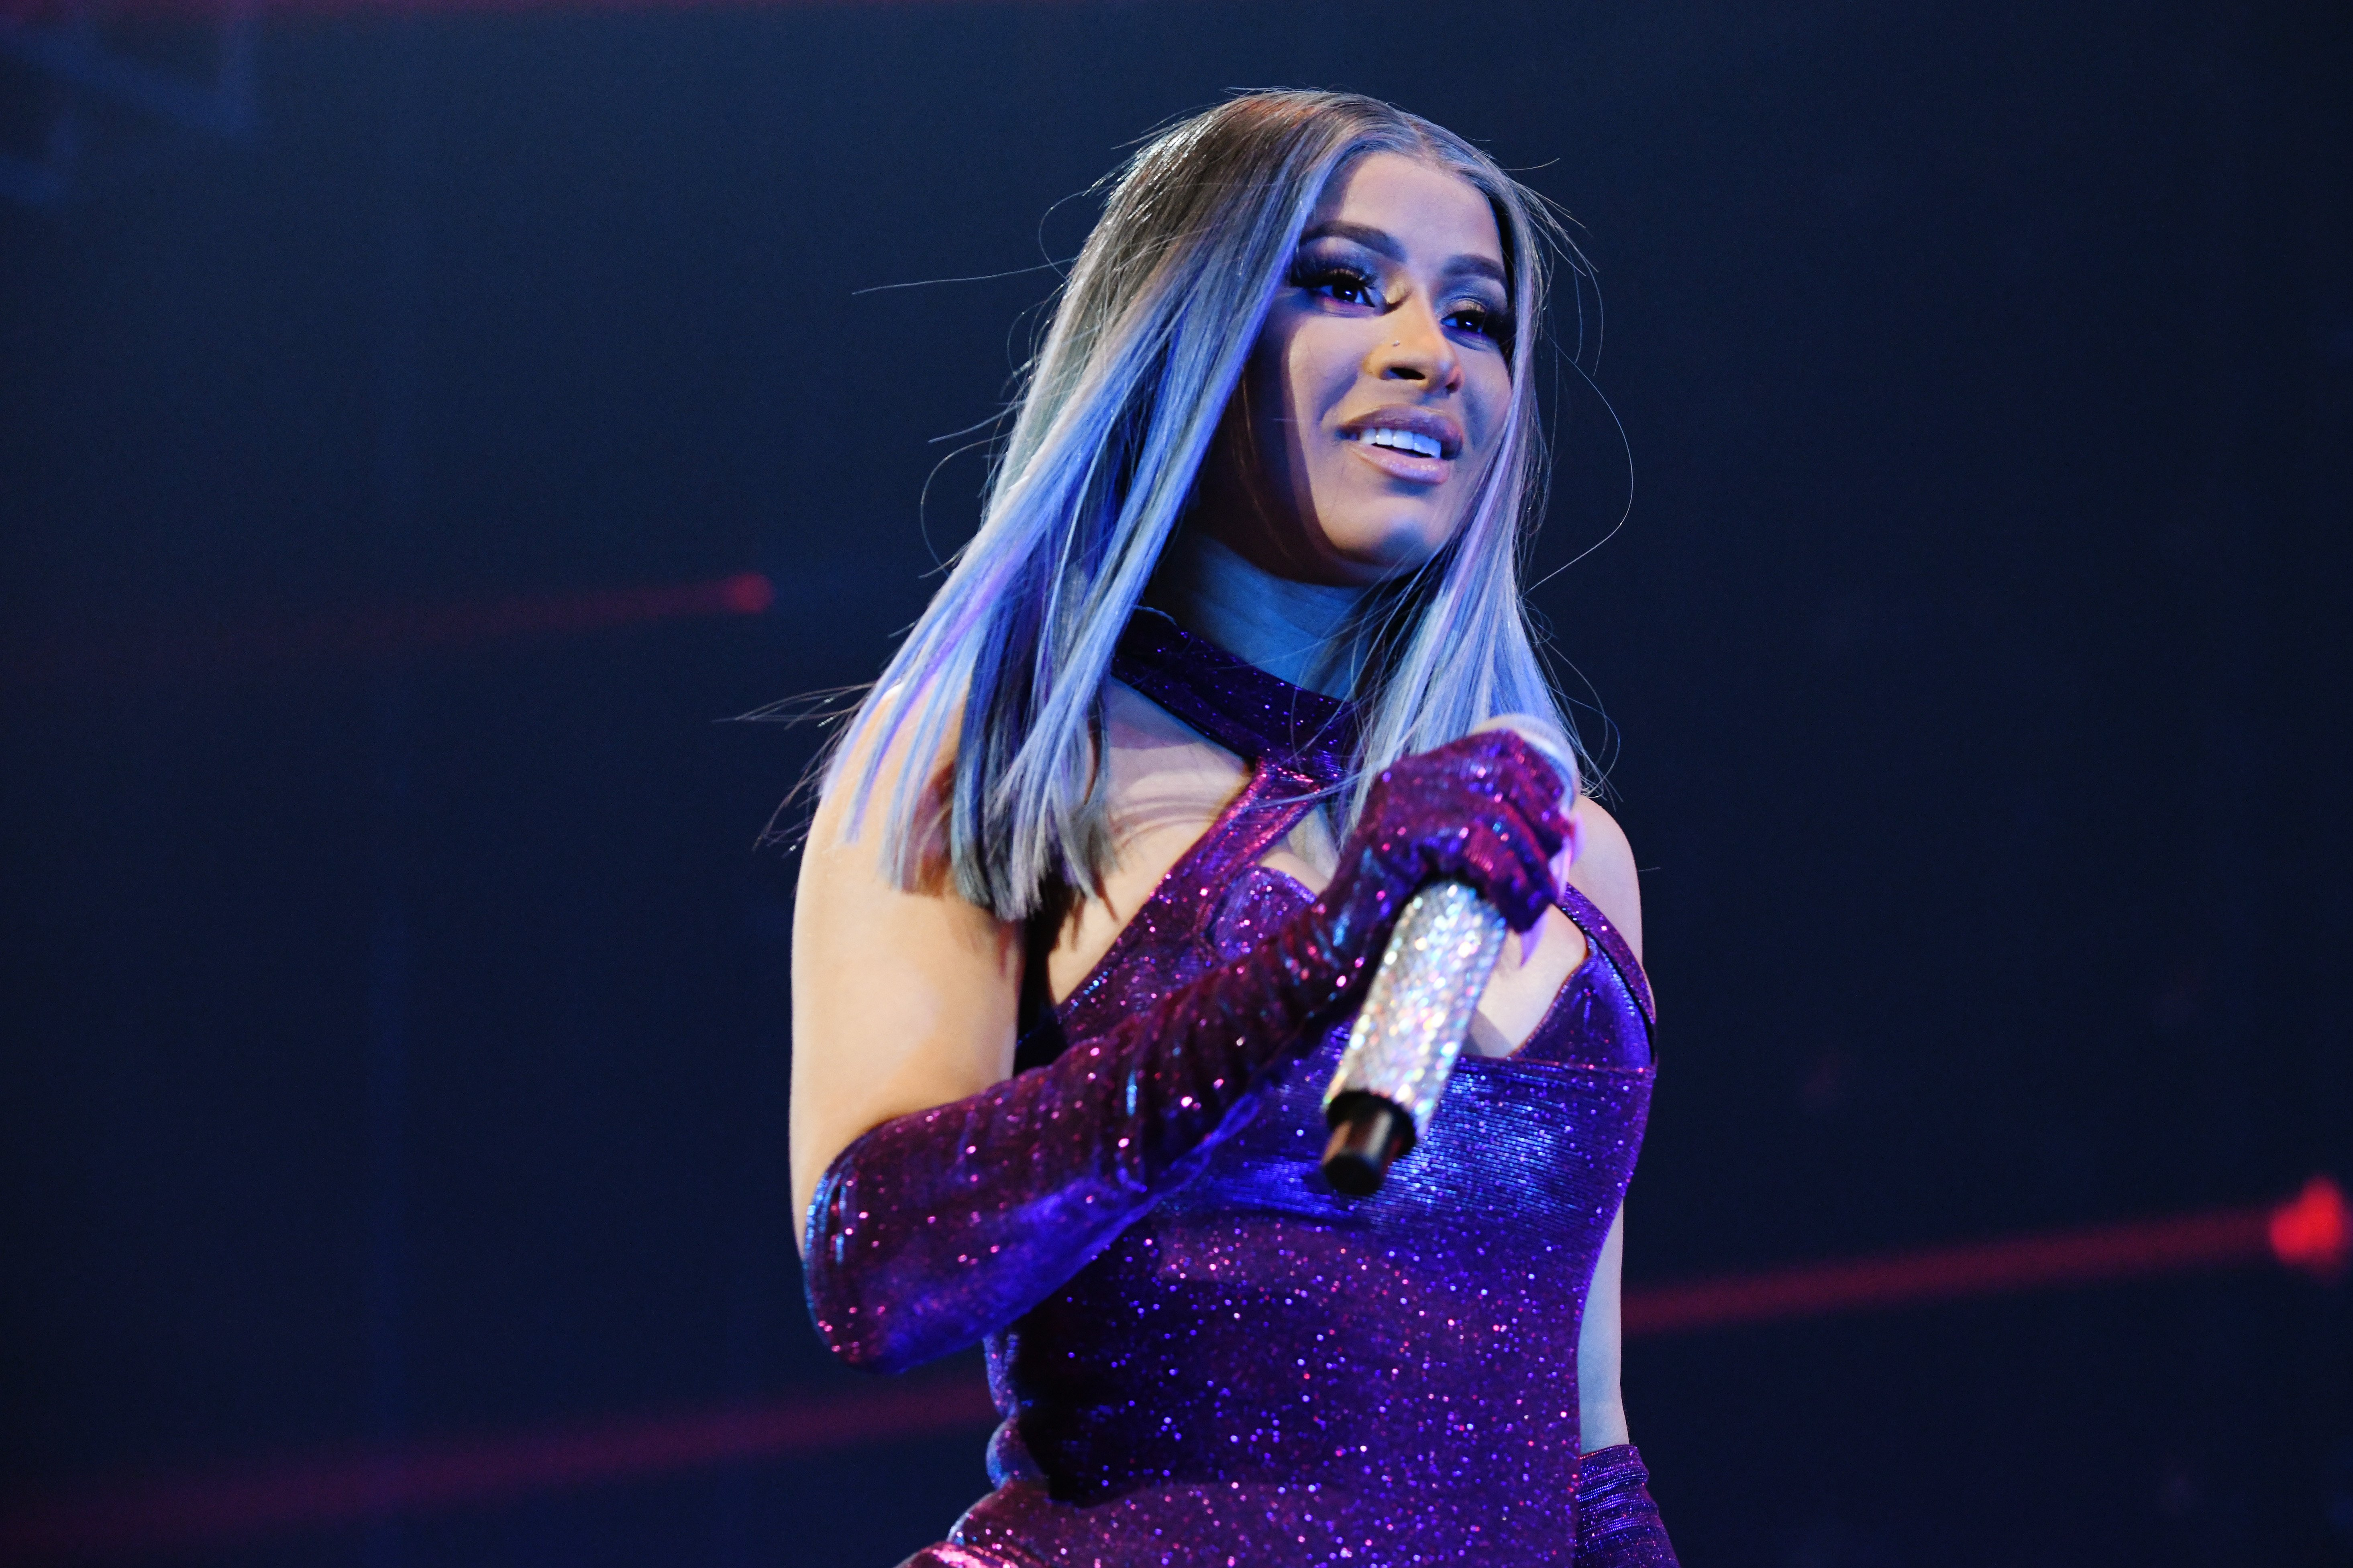 Cardi B performs onstage during BET Experience at Staples Center on June 22, 2019 in Los Angeles, California. | Photo: GettyImages